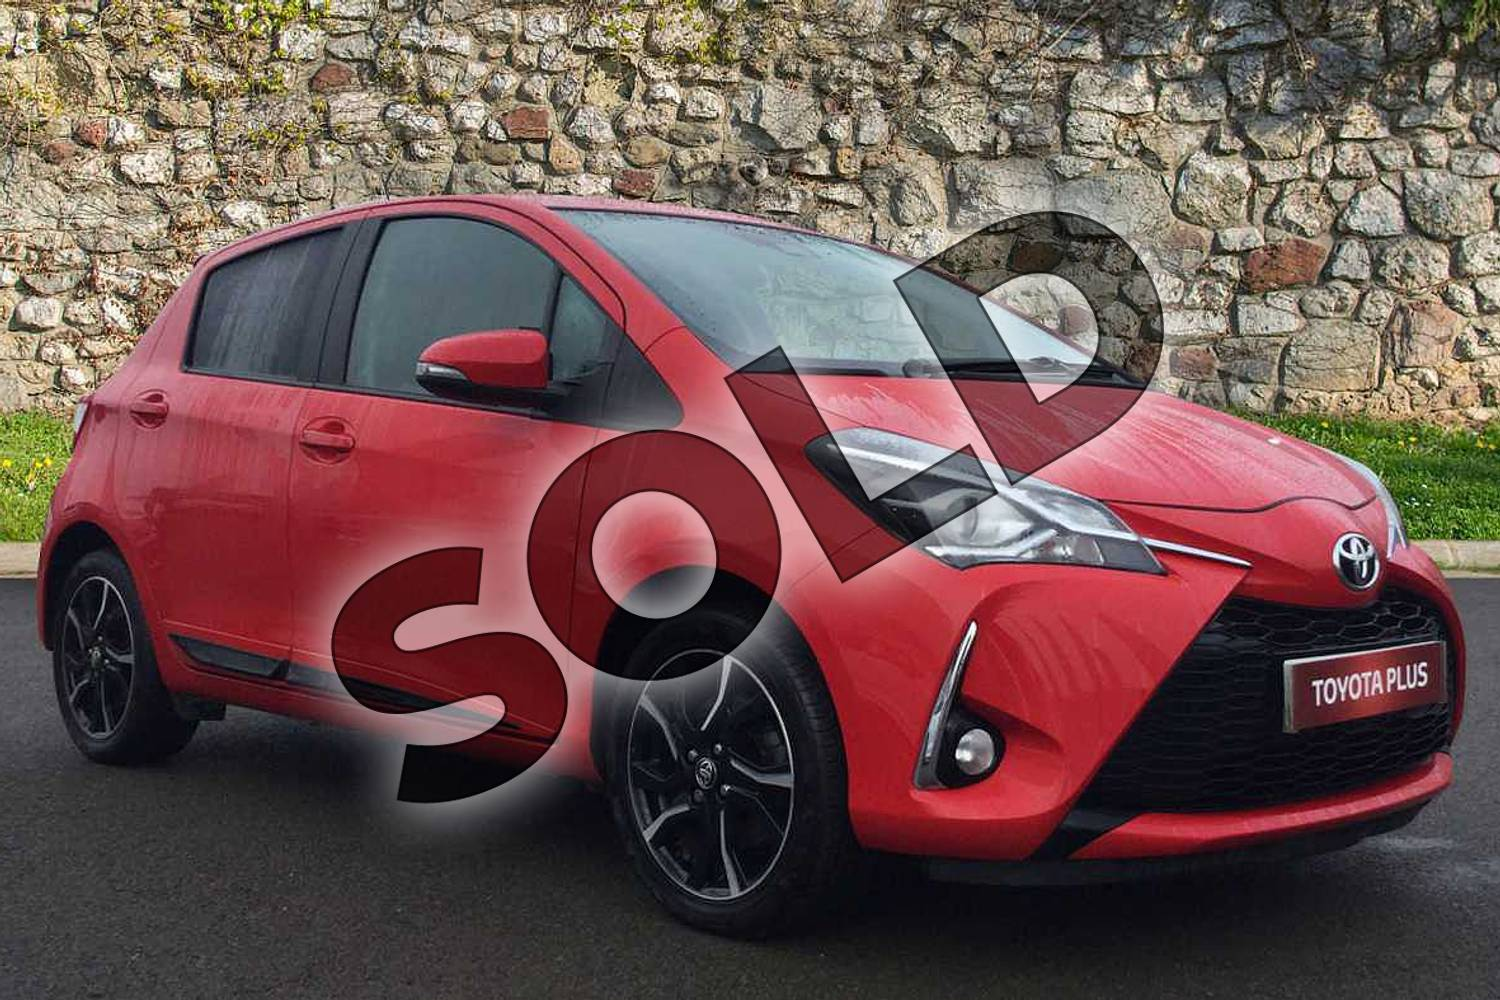 2017 Toyota Yaris Hatchback 1.5 VVT-i Design 5dr in Chilli Red at Listers Toyota Grantham